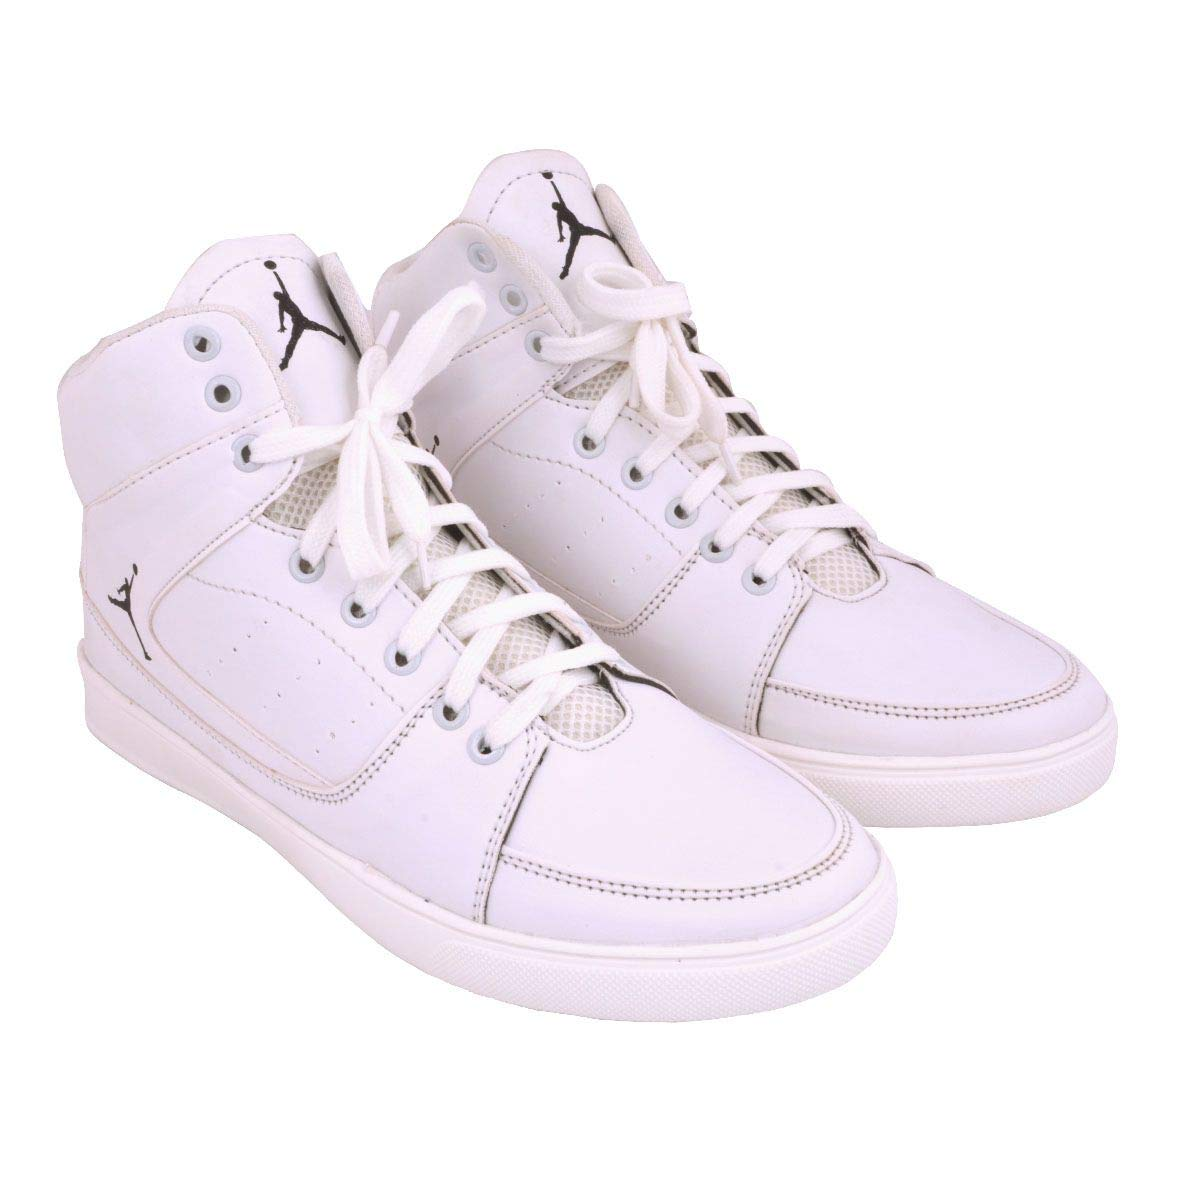 High Neck Sneakers Casual Boots Shoes